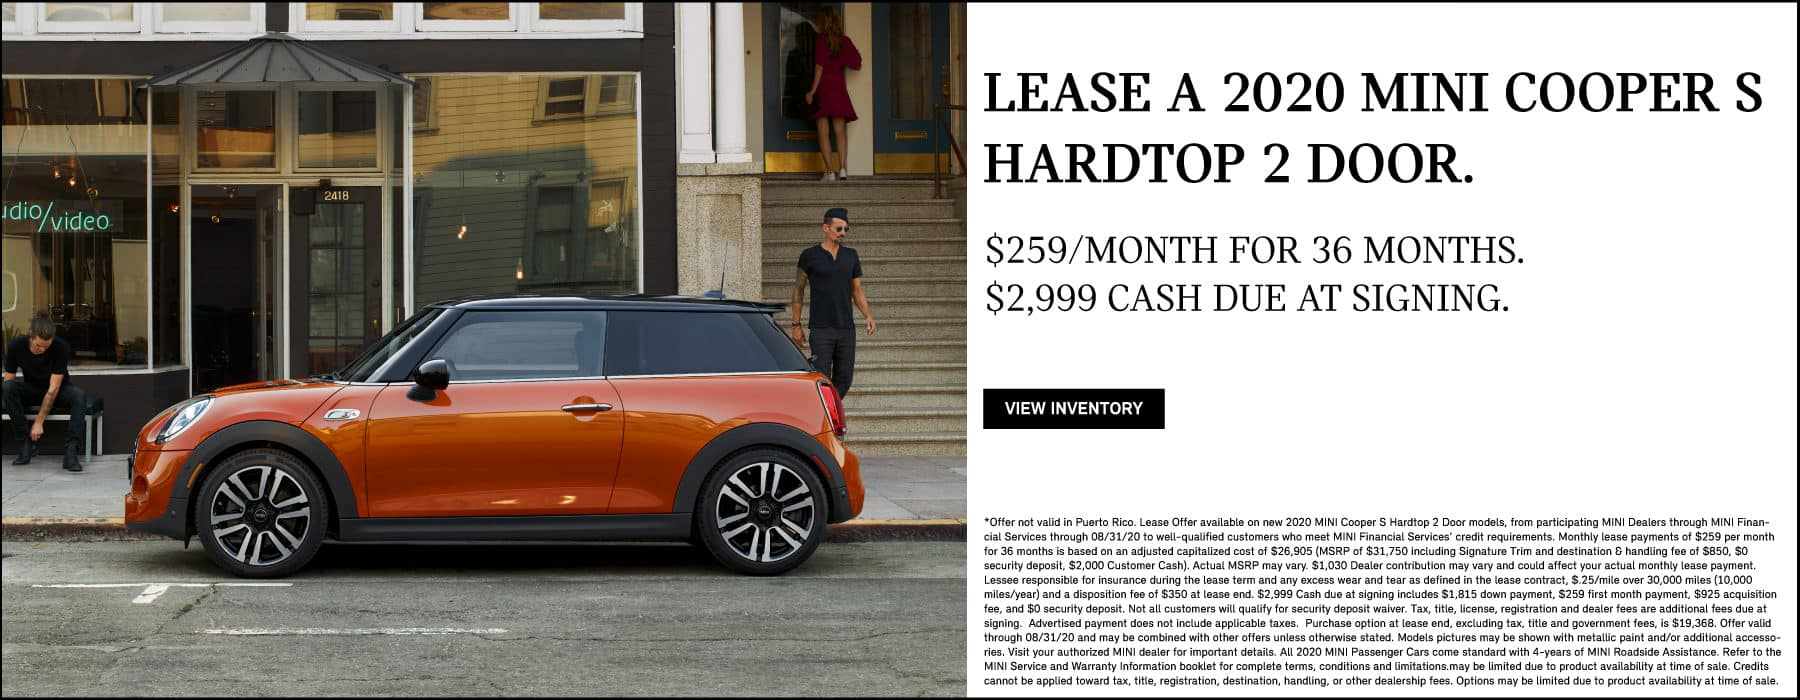 Lease a 2020 MINI Cooper S Hardtop 2 Door for $259/mo